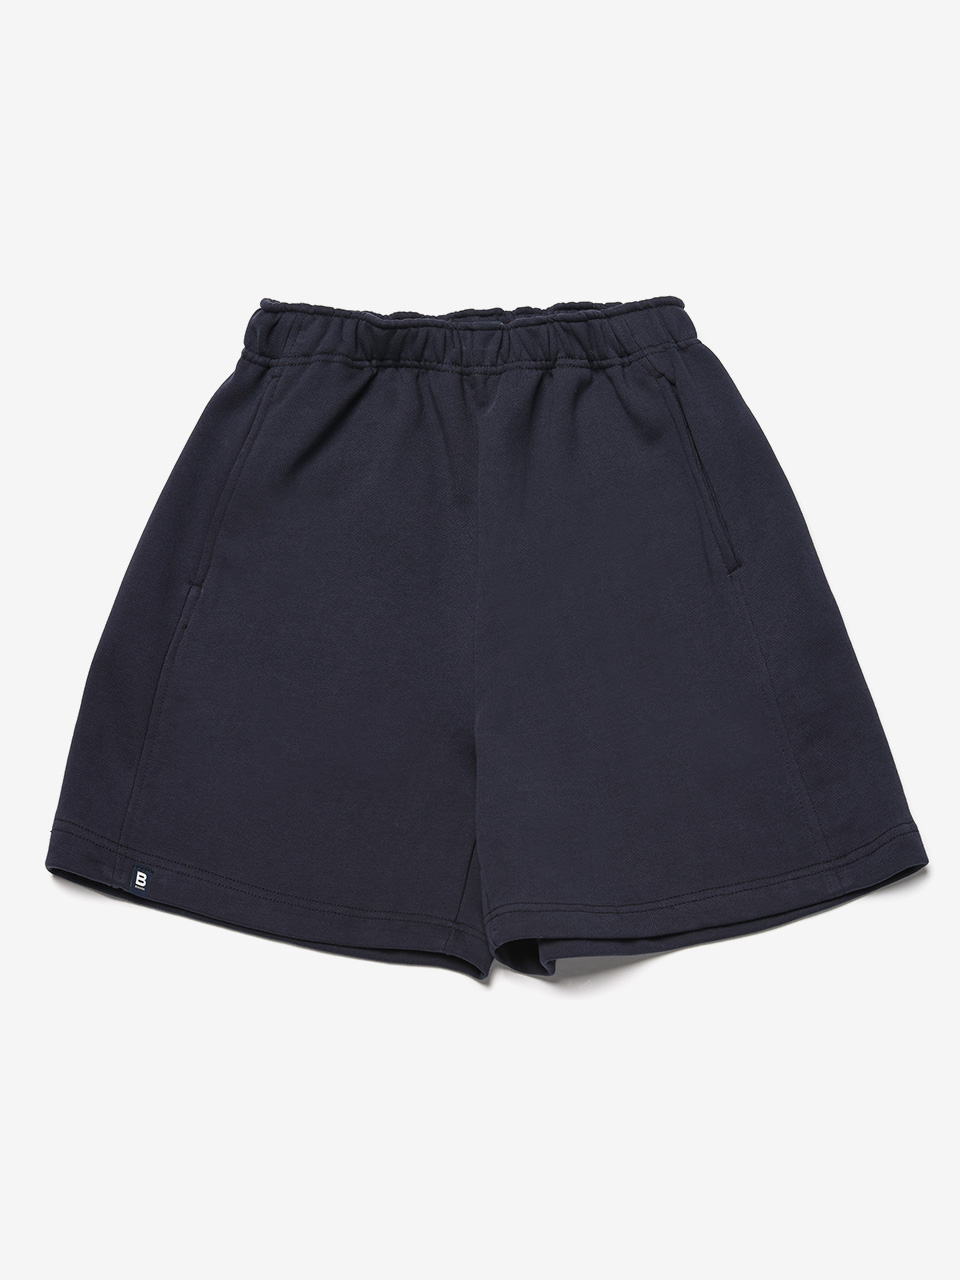 BENSIMON SWEAT SHORTS - NAVY